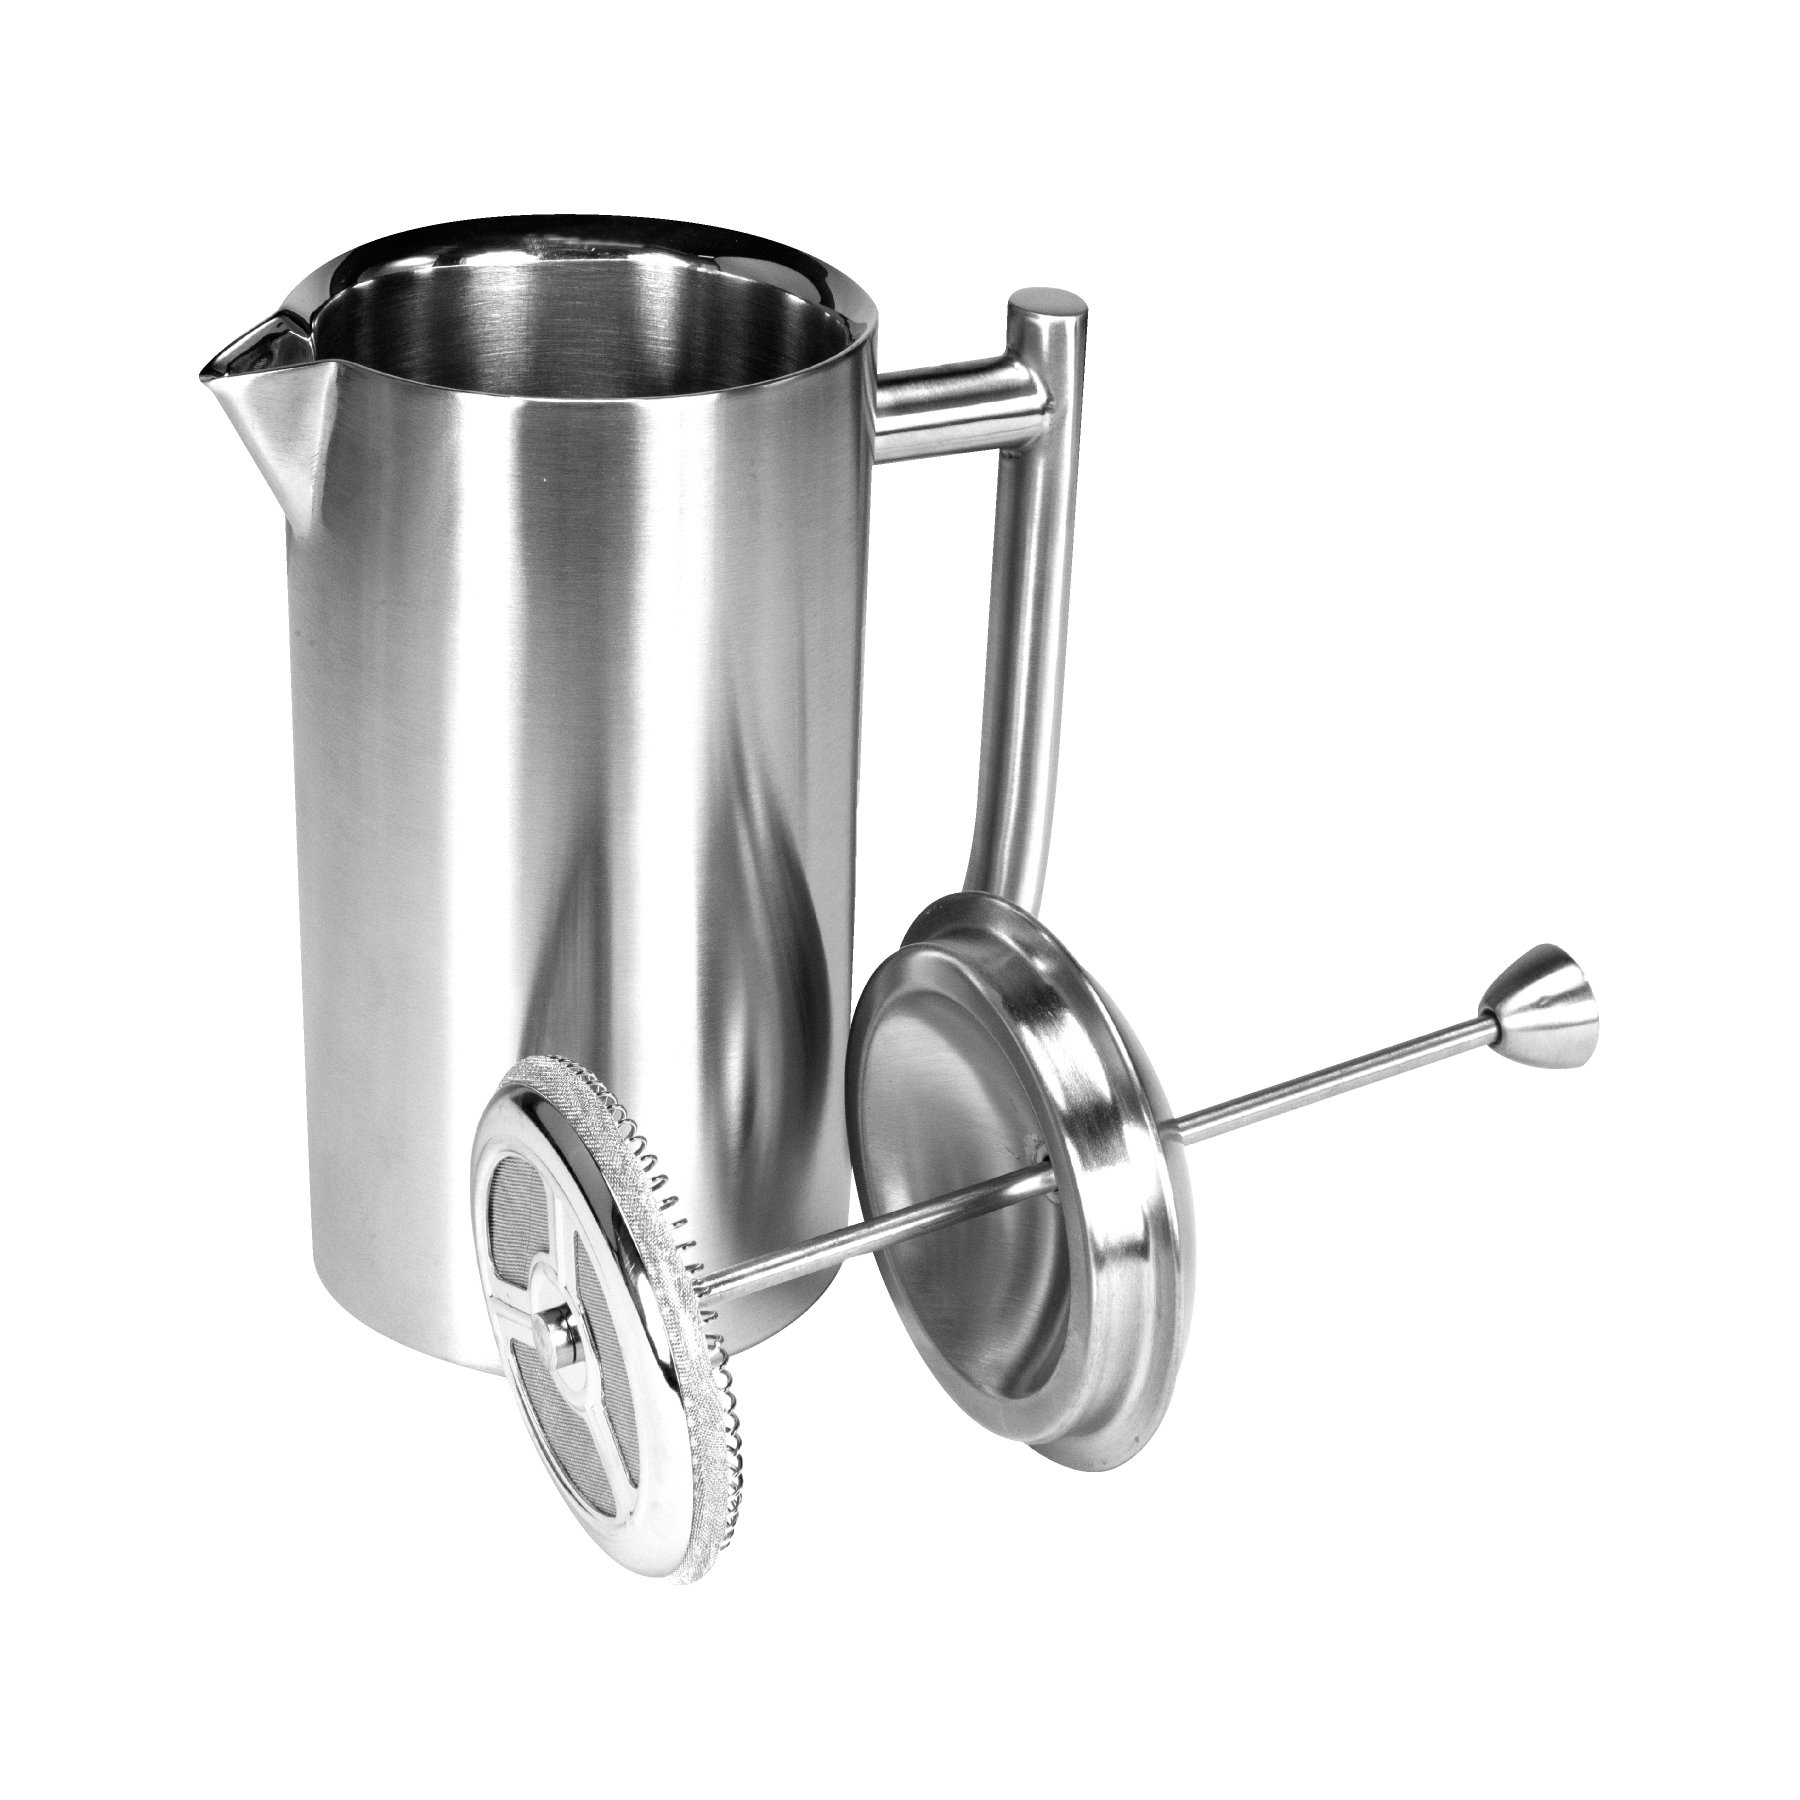 Frieling USA 131 Double Wall Stainless Steel French Press Coffee Maker with Patented Dual Screen, 44-Ounce, Brushed by Frieling (Image #2)